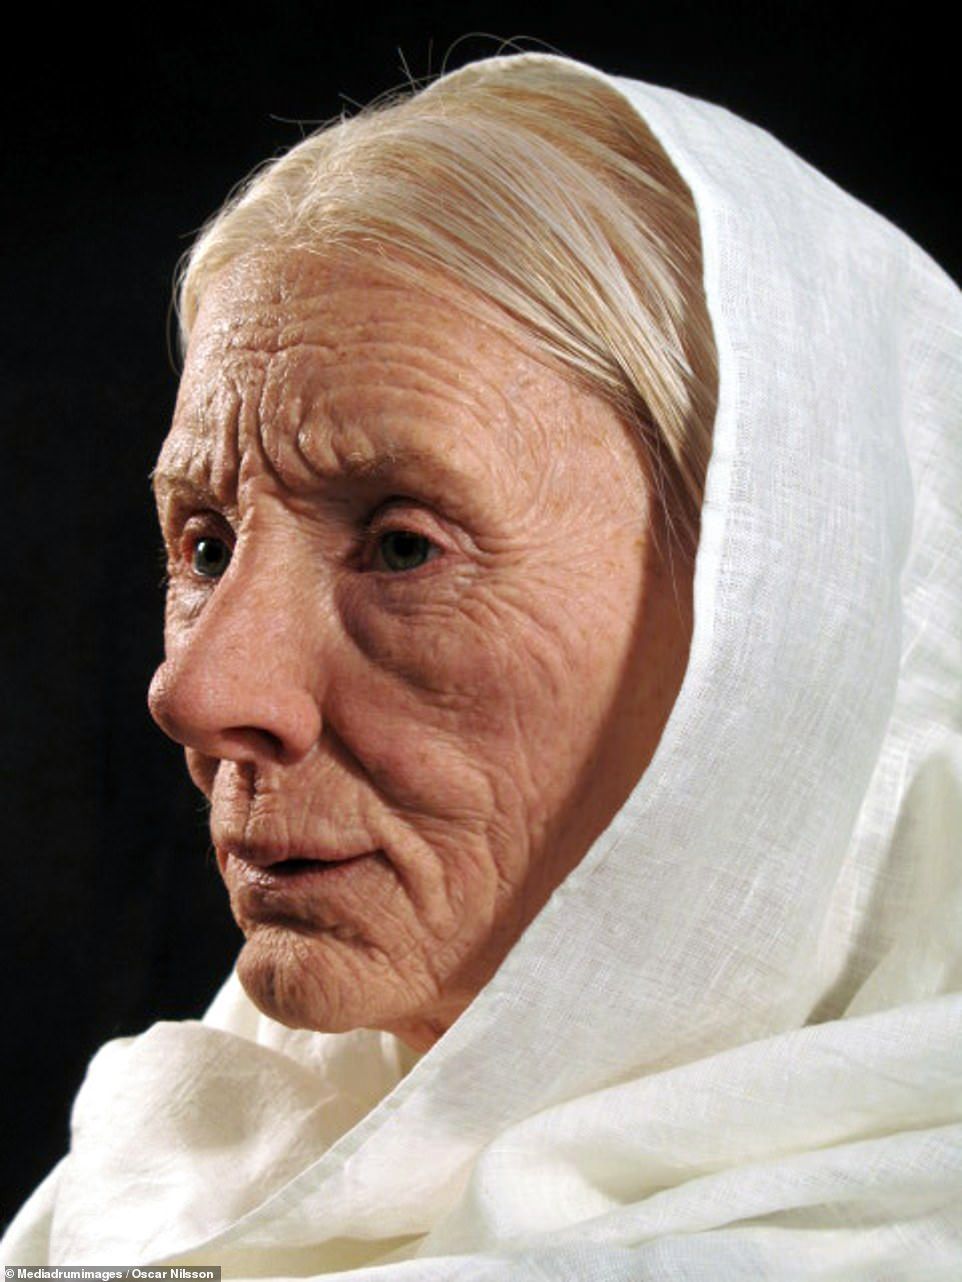 Faces of people who died thousands of years ago are revealed in these stunning pictures, after they were expertly reconstructed by a Swedish sculptor. Pictured:Estrid Sigfastsdotter, a rich and powerful Viking noblewoman